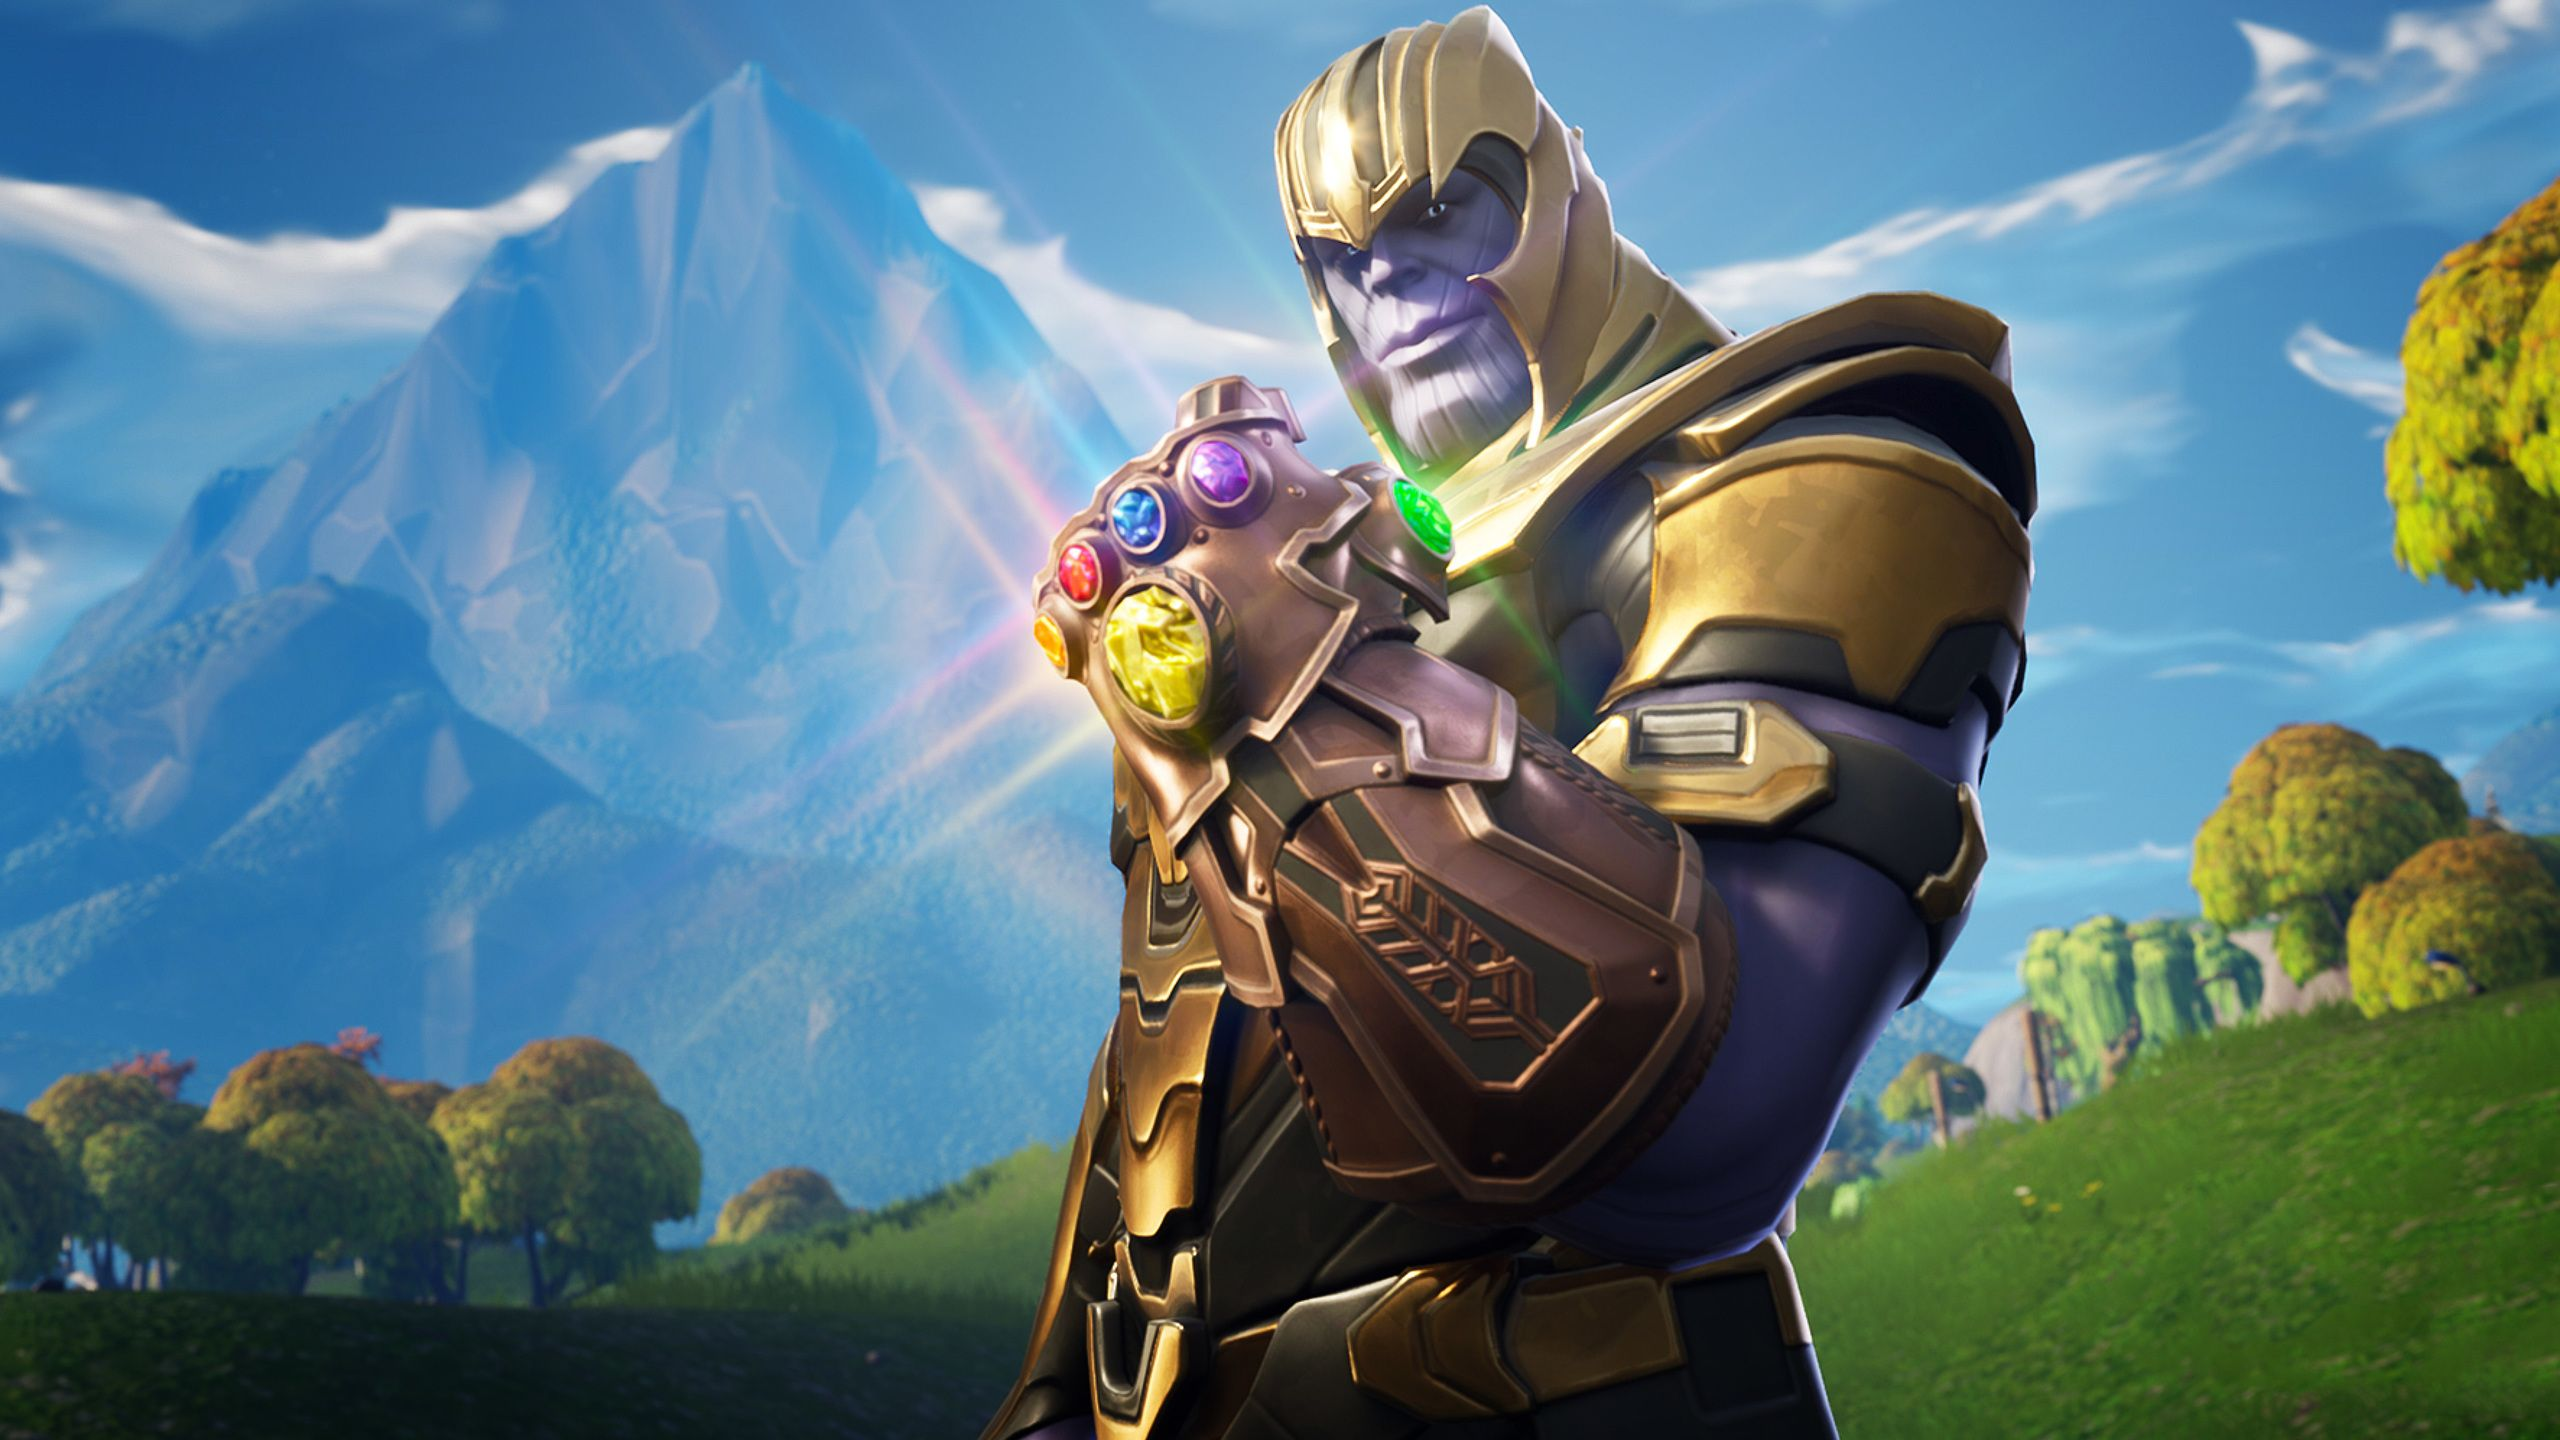 Fortnite 2560x1440 Wallpapers Top Free Fortnite 2560x1440 Backgrounds Wallpaperaccess